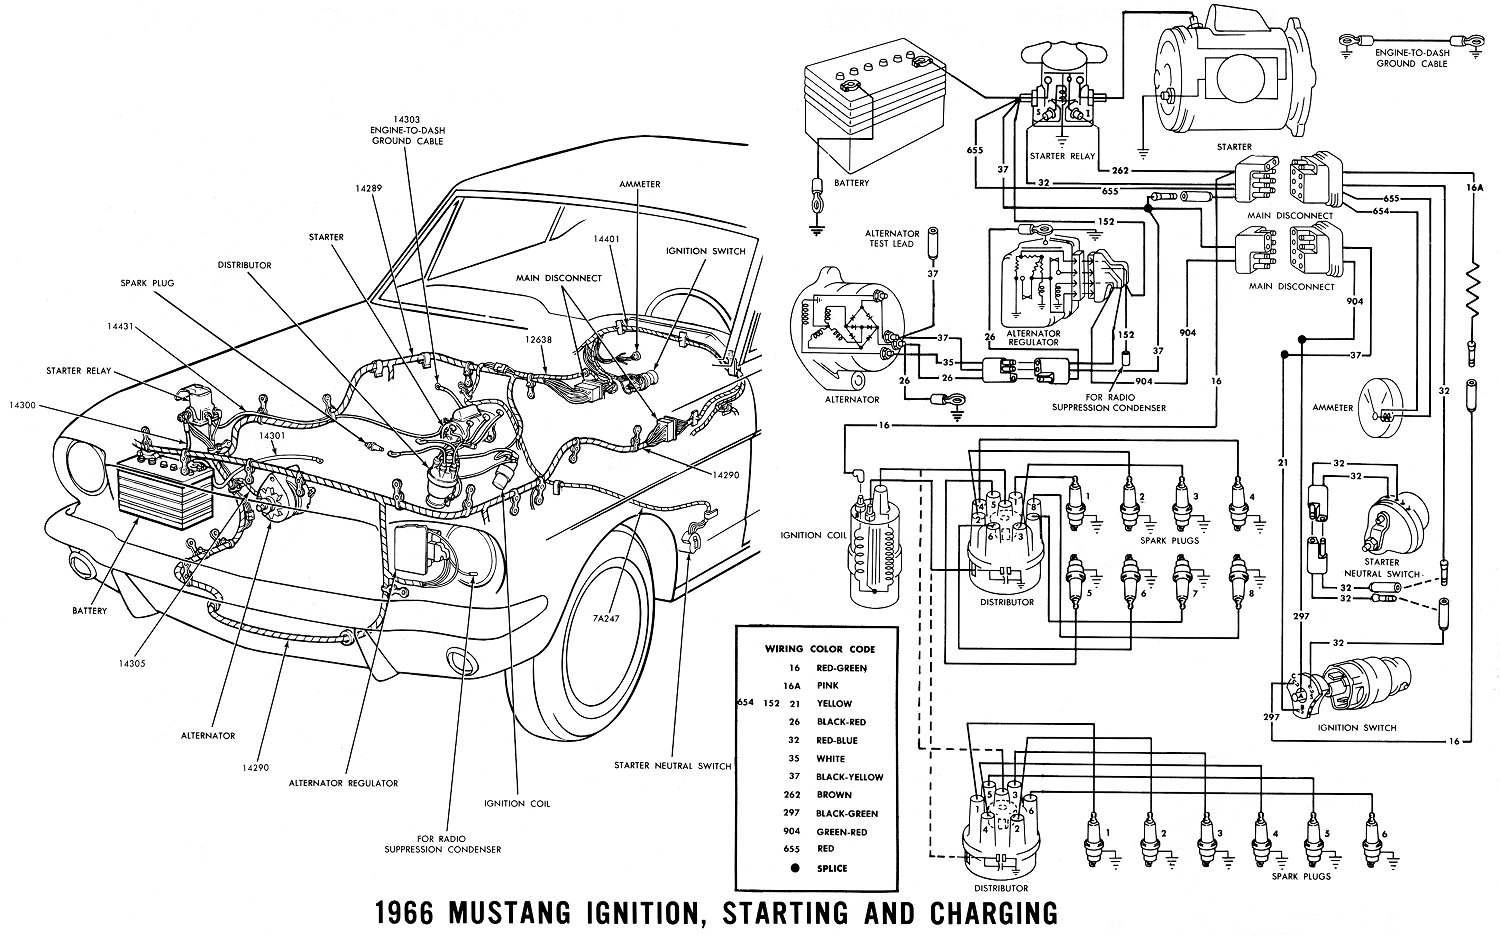 84 Mustang Engine Diagram Wiring Library 1984 Chevy Truck Wire Harness 1966 Ignition Starting And Charging